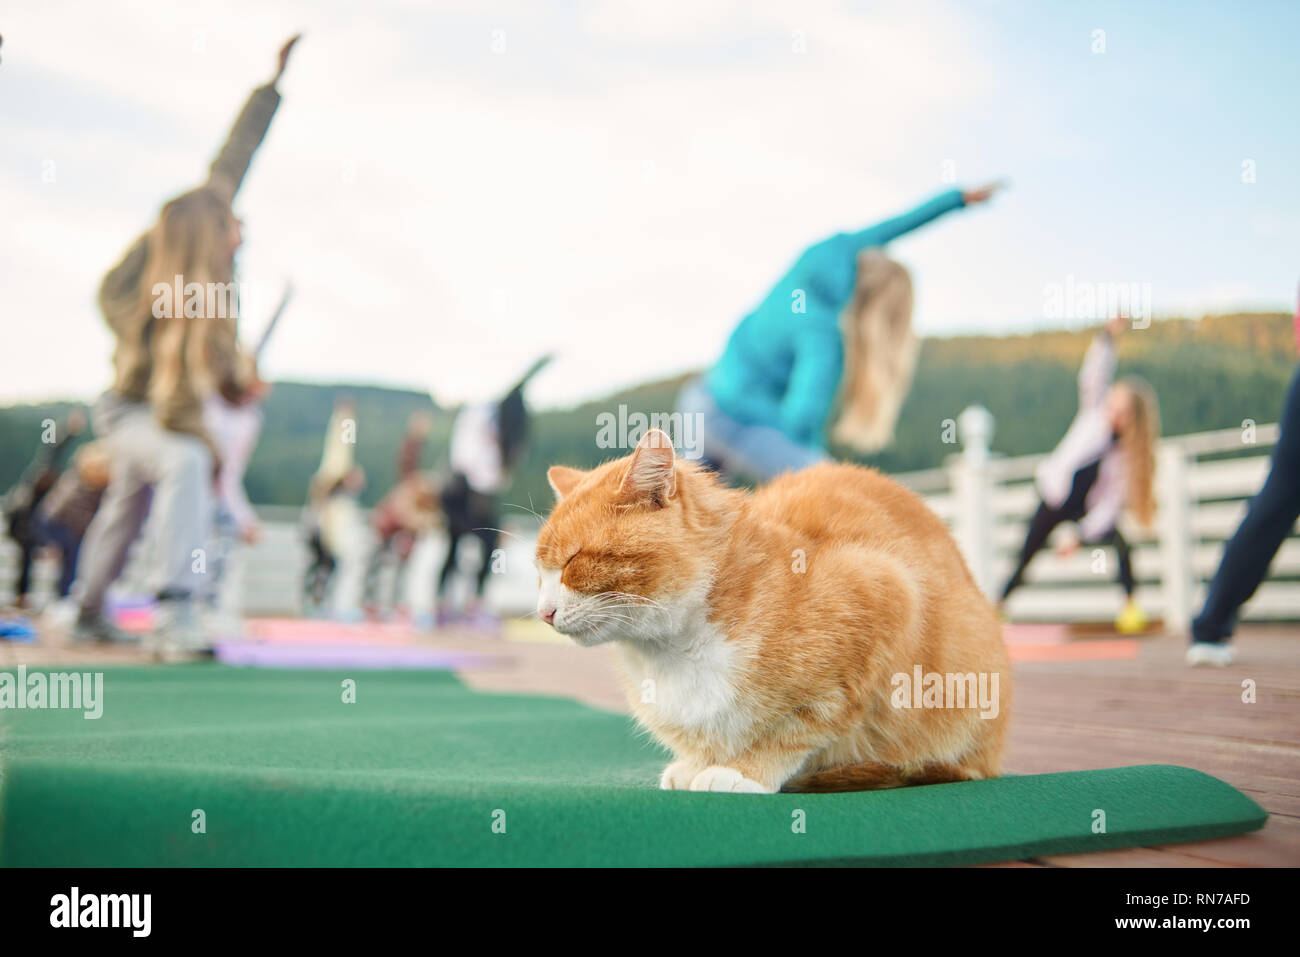 Ginger and white cat sleeping during fitness class. Peaceful cat sitting with closed eyes. Women training and practicing yoga or pilates on background. Group doing sports on fresh air. - Stock Image